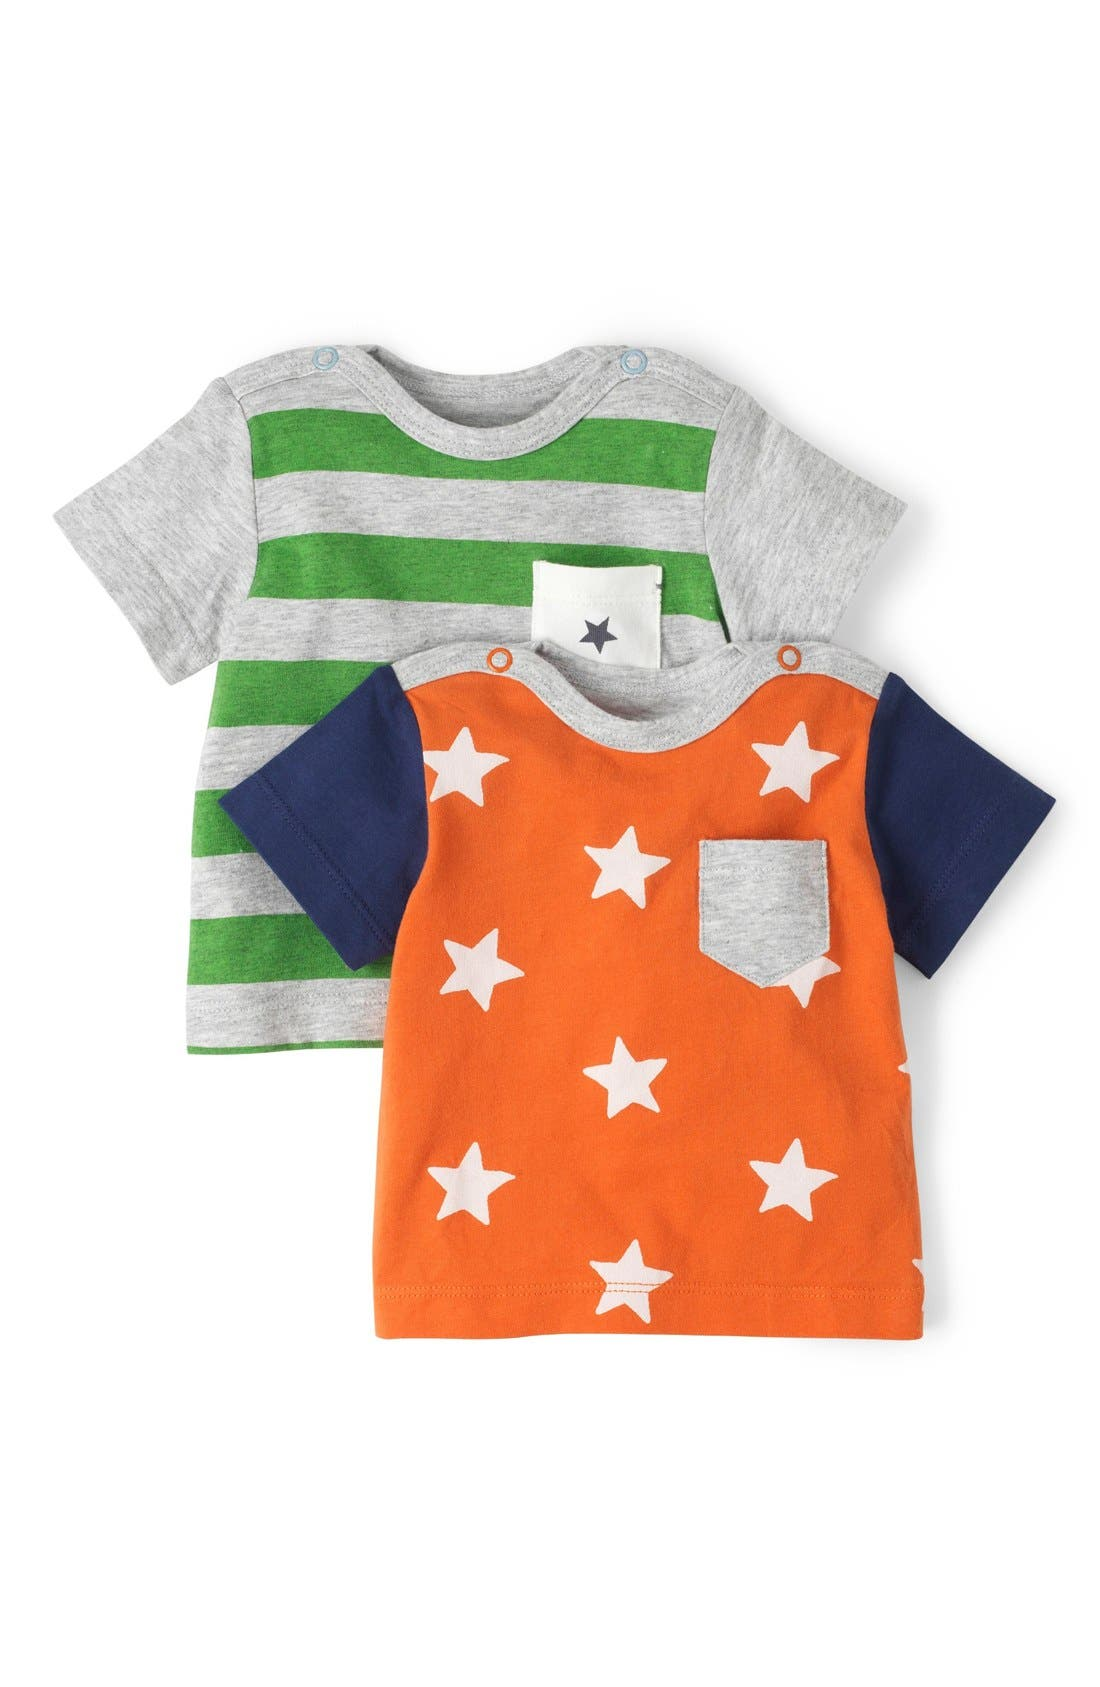 Main Image - Mini Boden 'Hotchpotch' Chest Pocket T-Shirts (Set of 2) (Baby Boys)